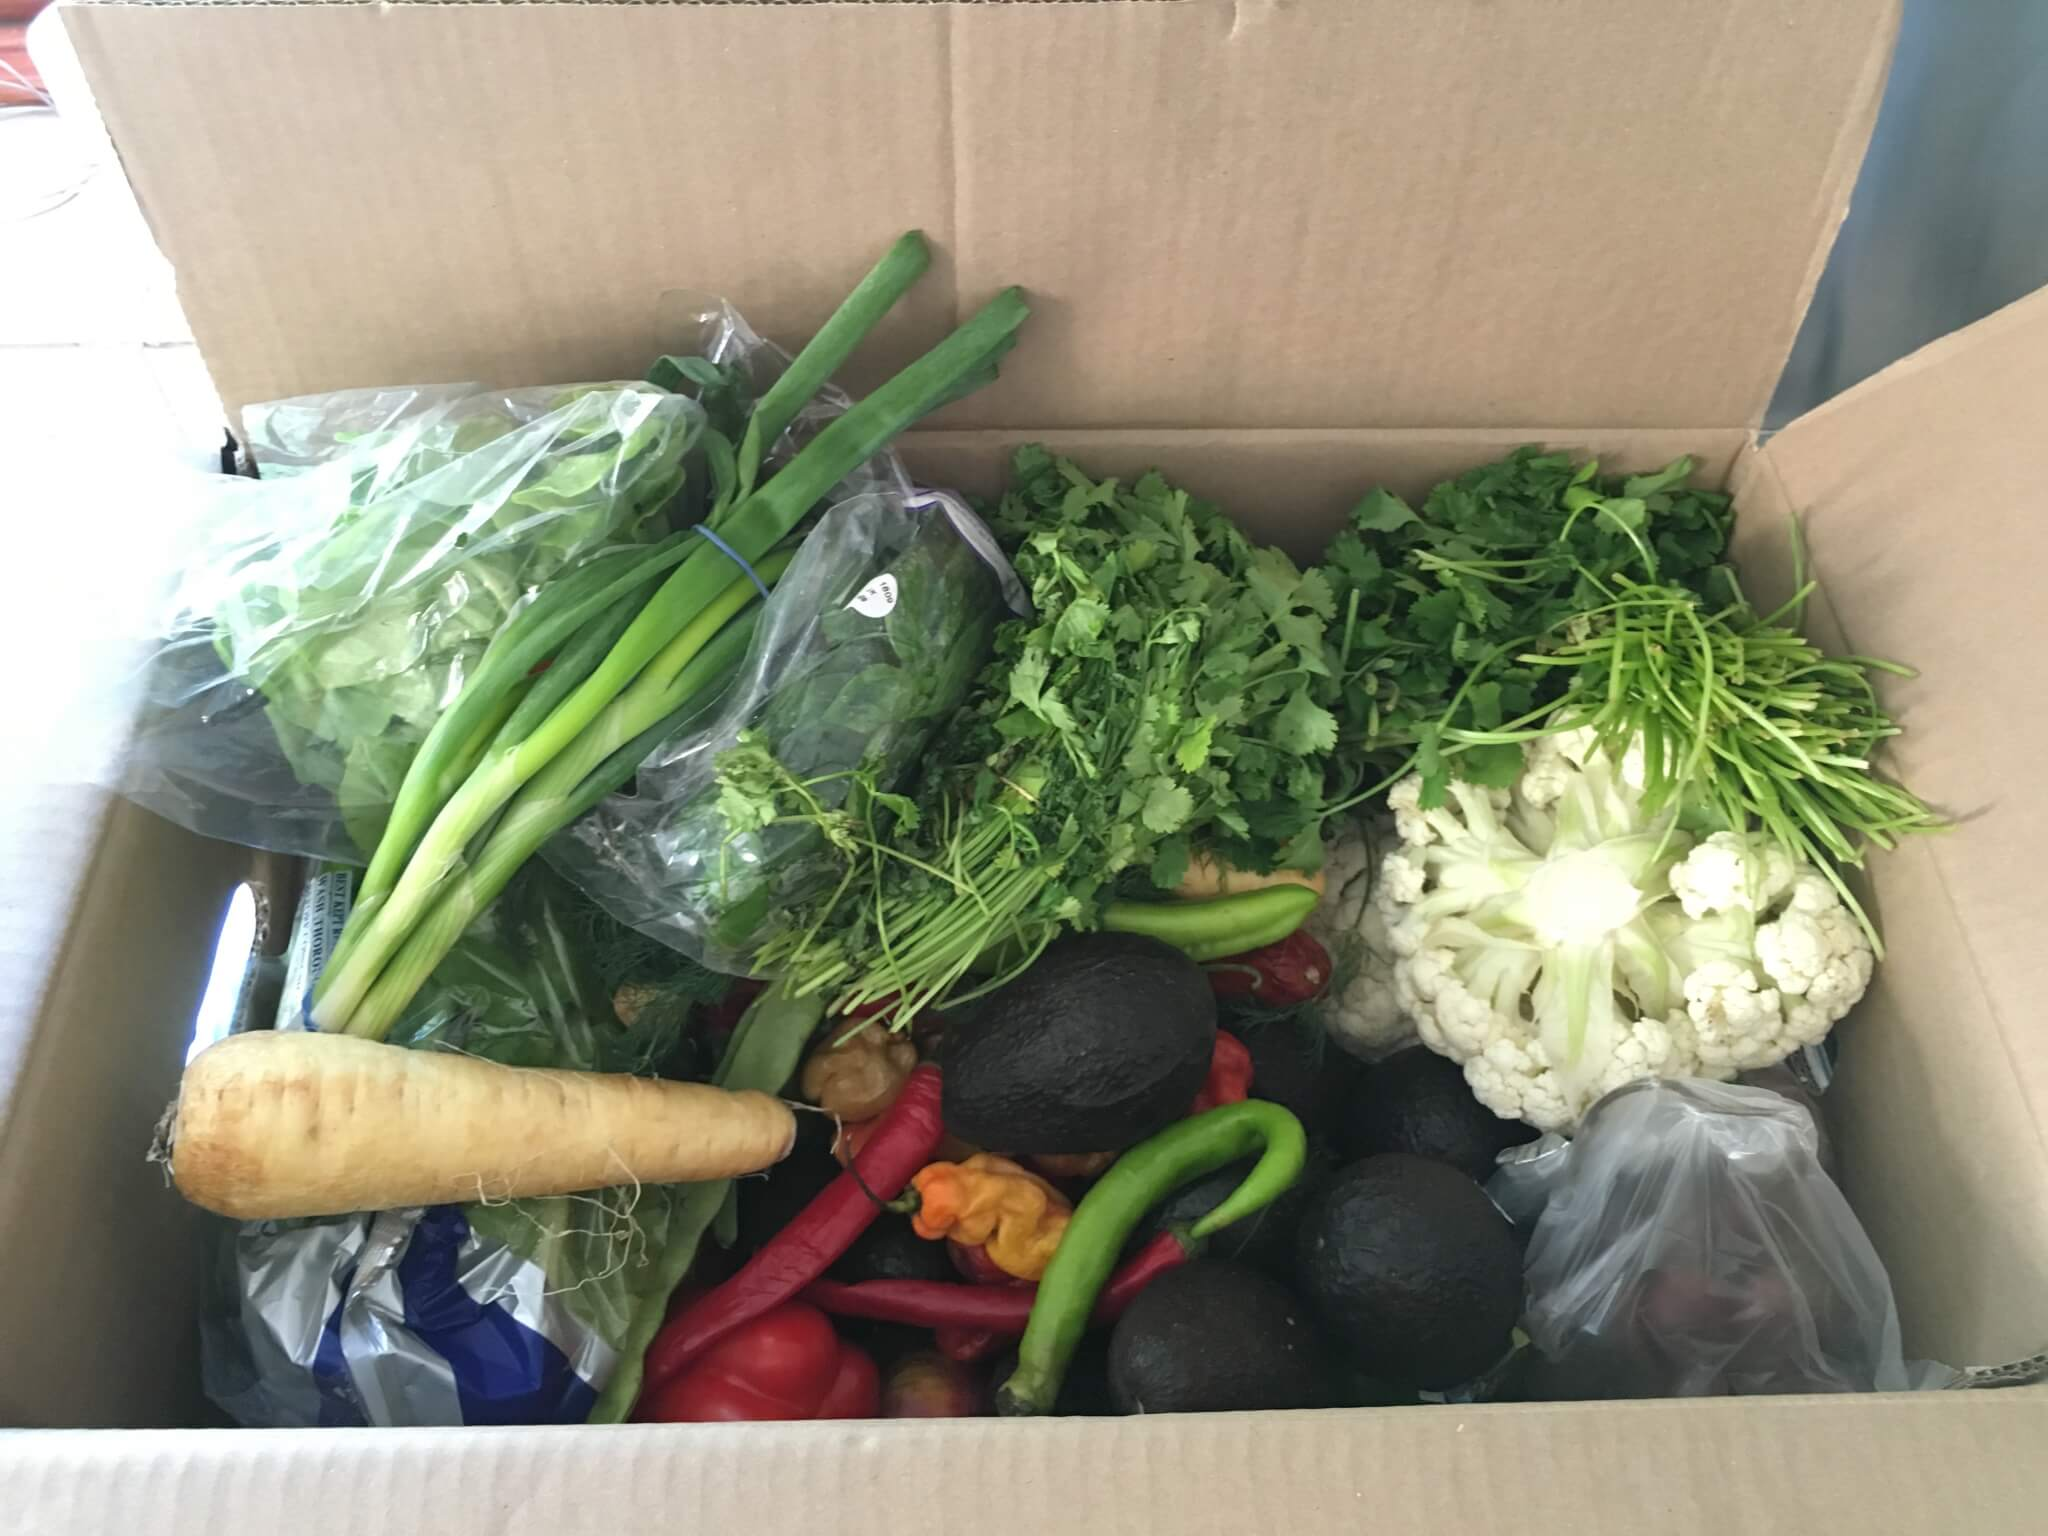 Vegetables and herbs like as spring onions, coriander, peppers in a cardboard box